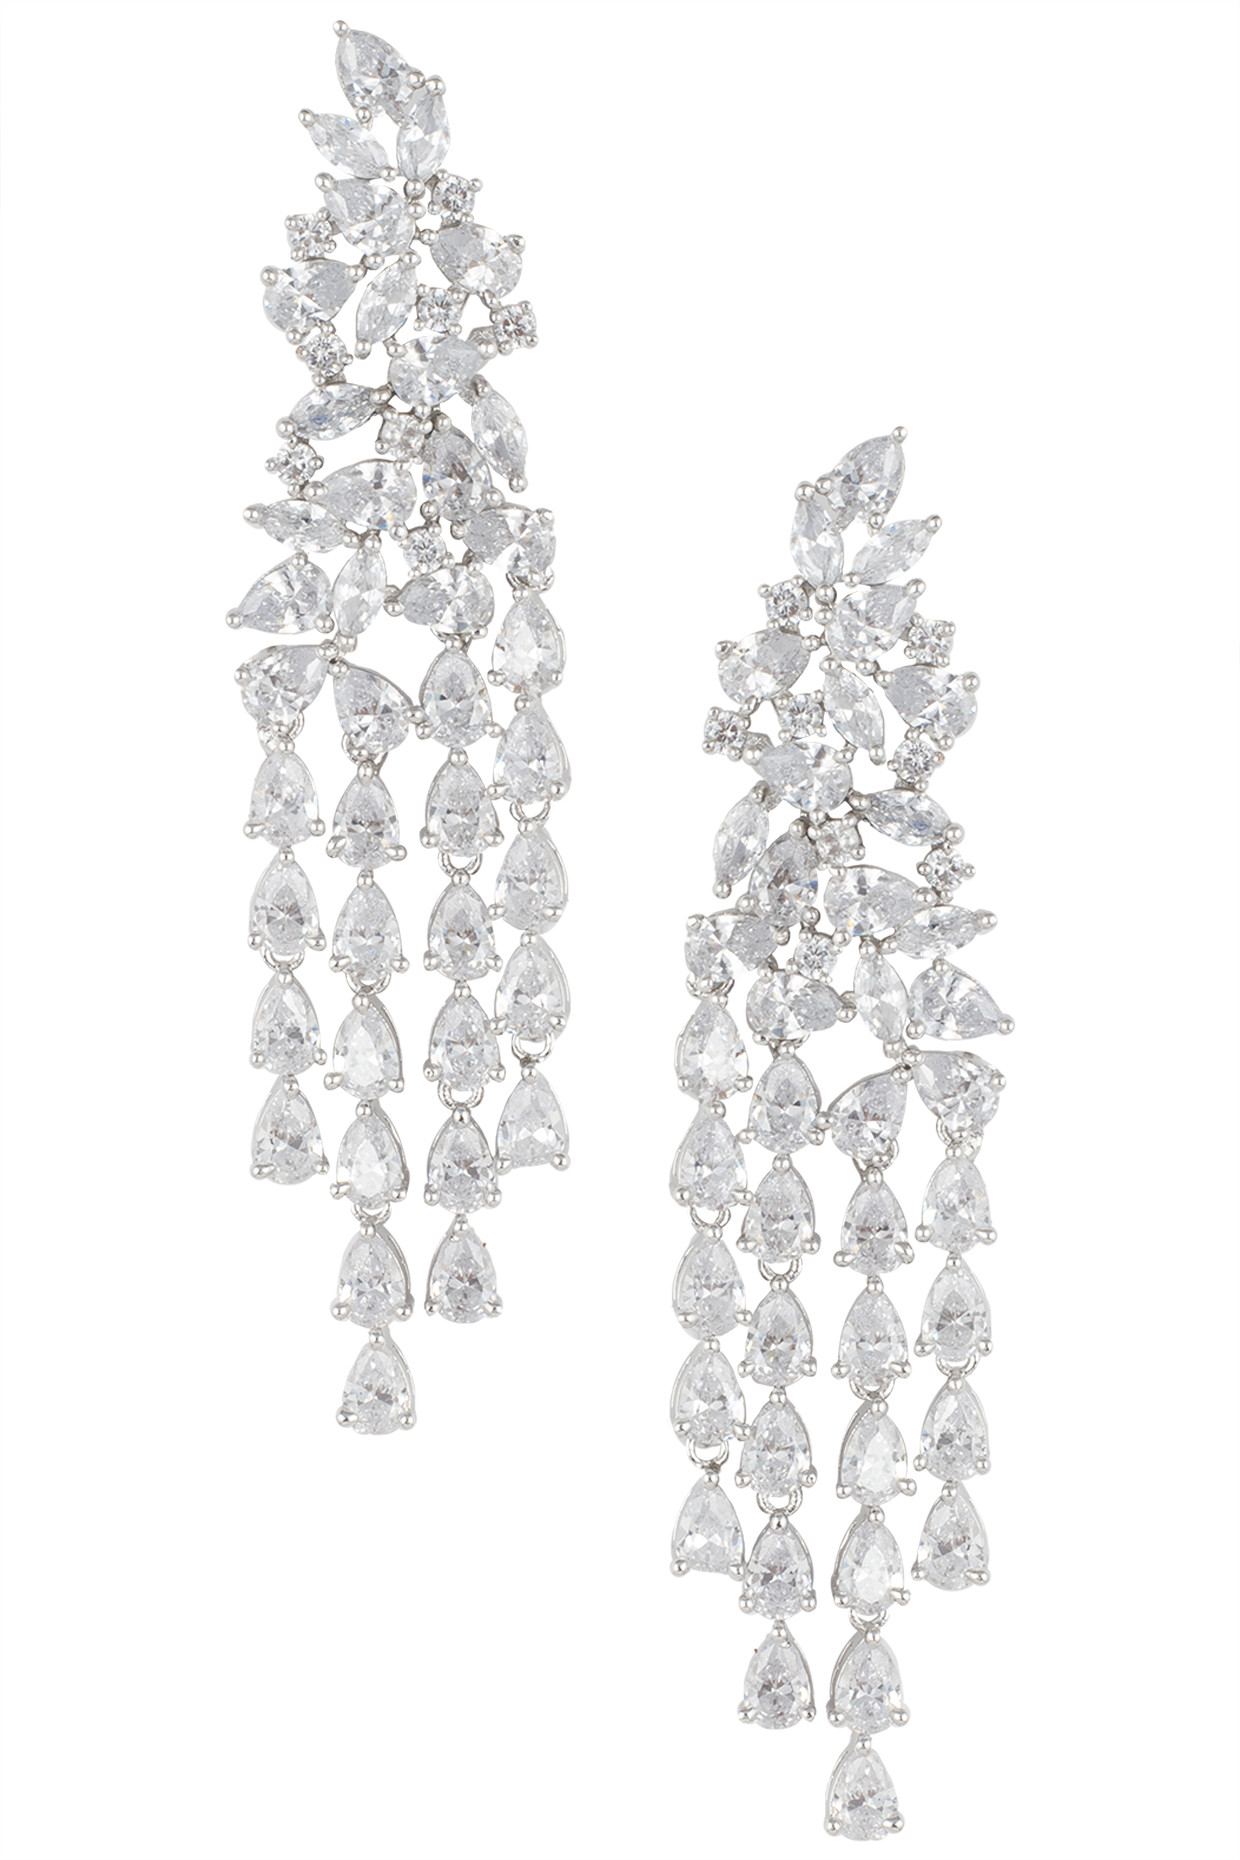 Silver plated multi line faux solitaire diamond earrings by Aster